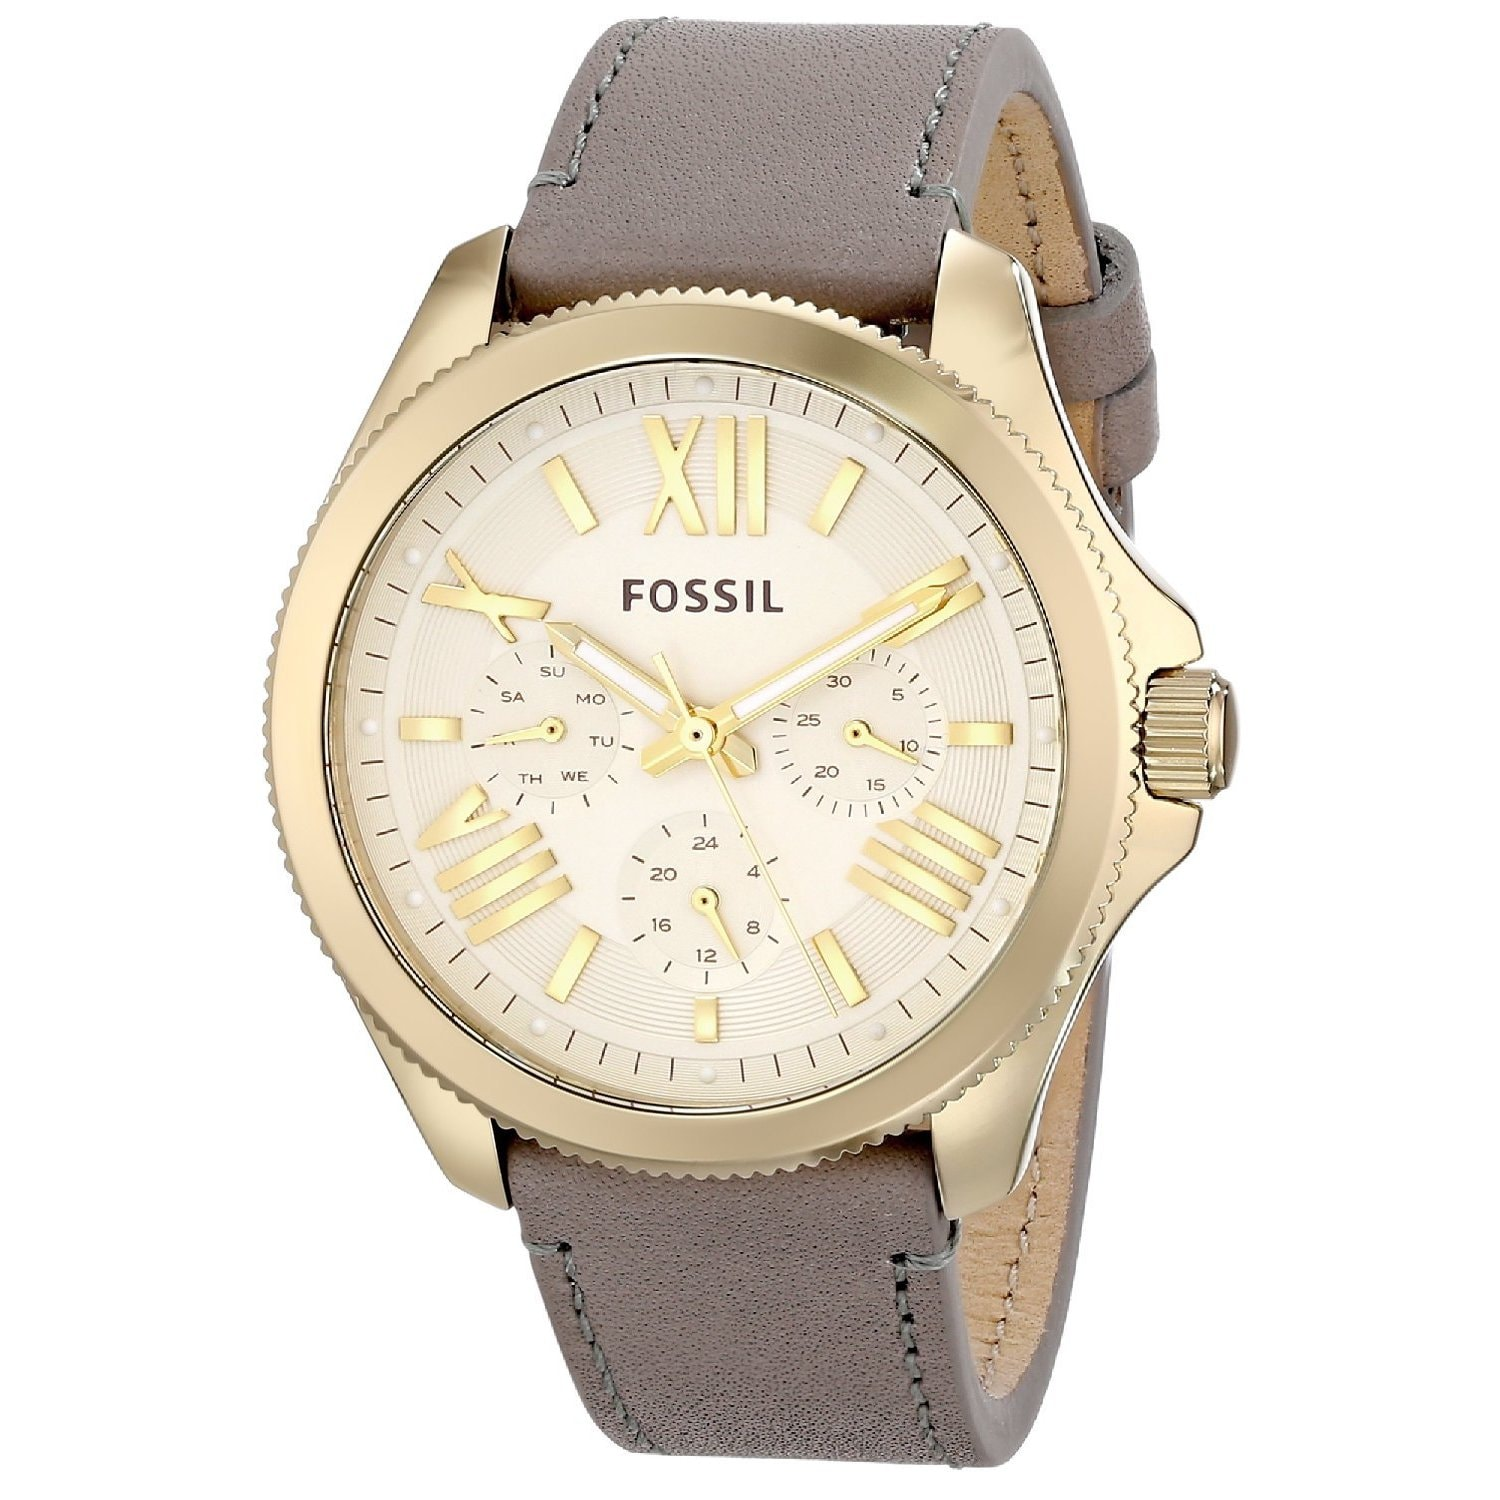 Fossil Women's AM4529 'Cecile' Grey Leather Watch (Fossil...